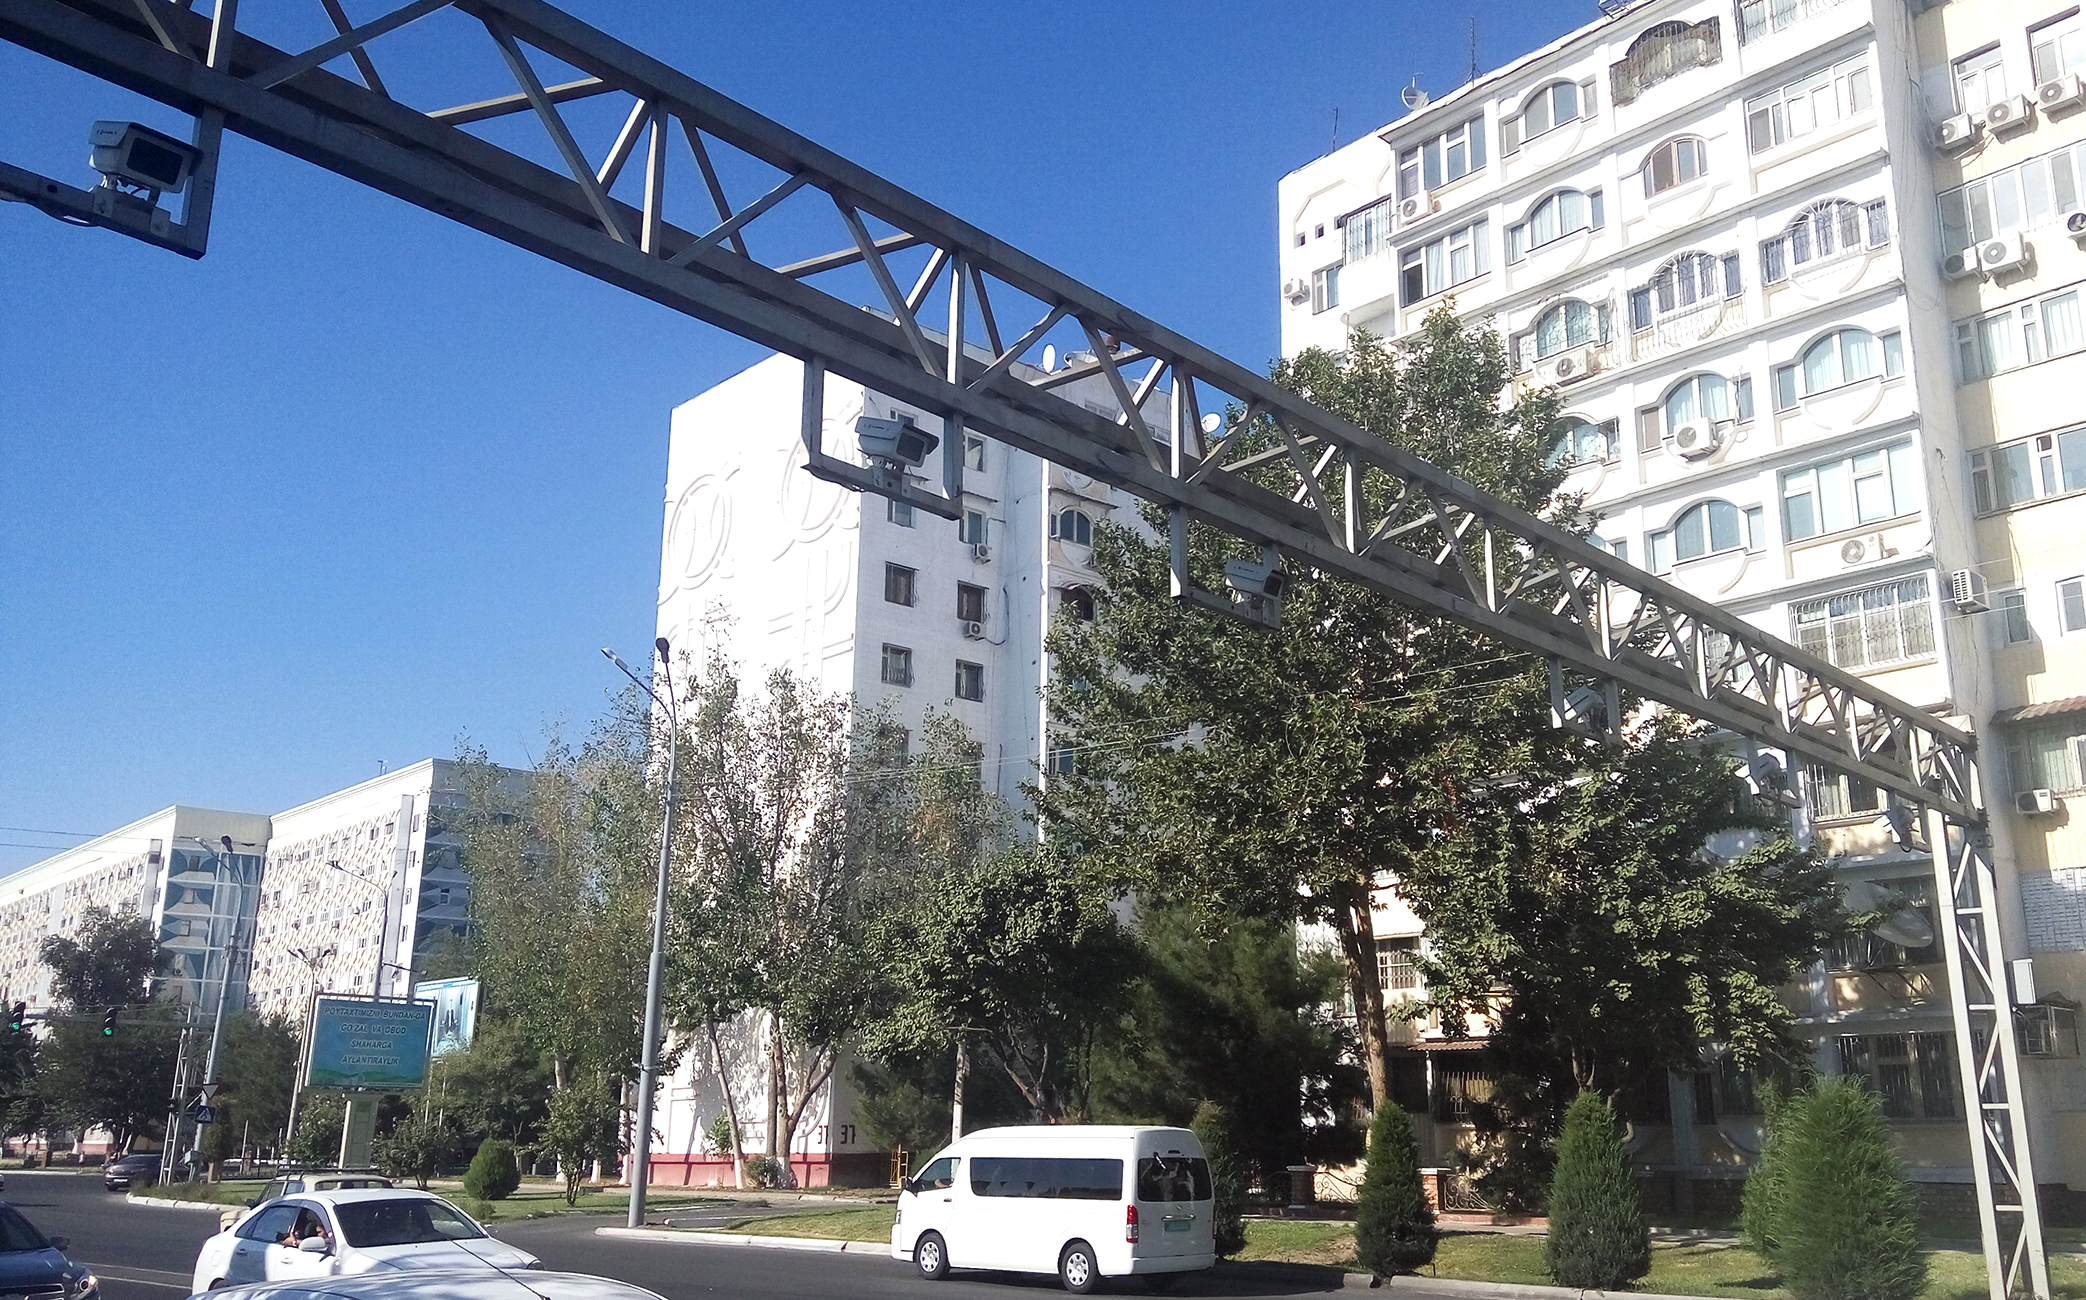 A security camera over a Tashkent street is shown September 7. The camera is part of the Tashkent 'Safe City' project. [Maksim Yeniseyev]